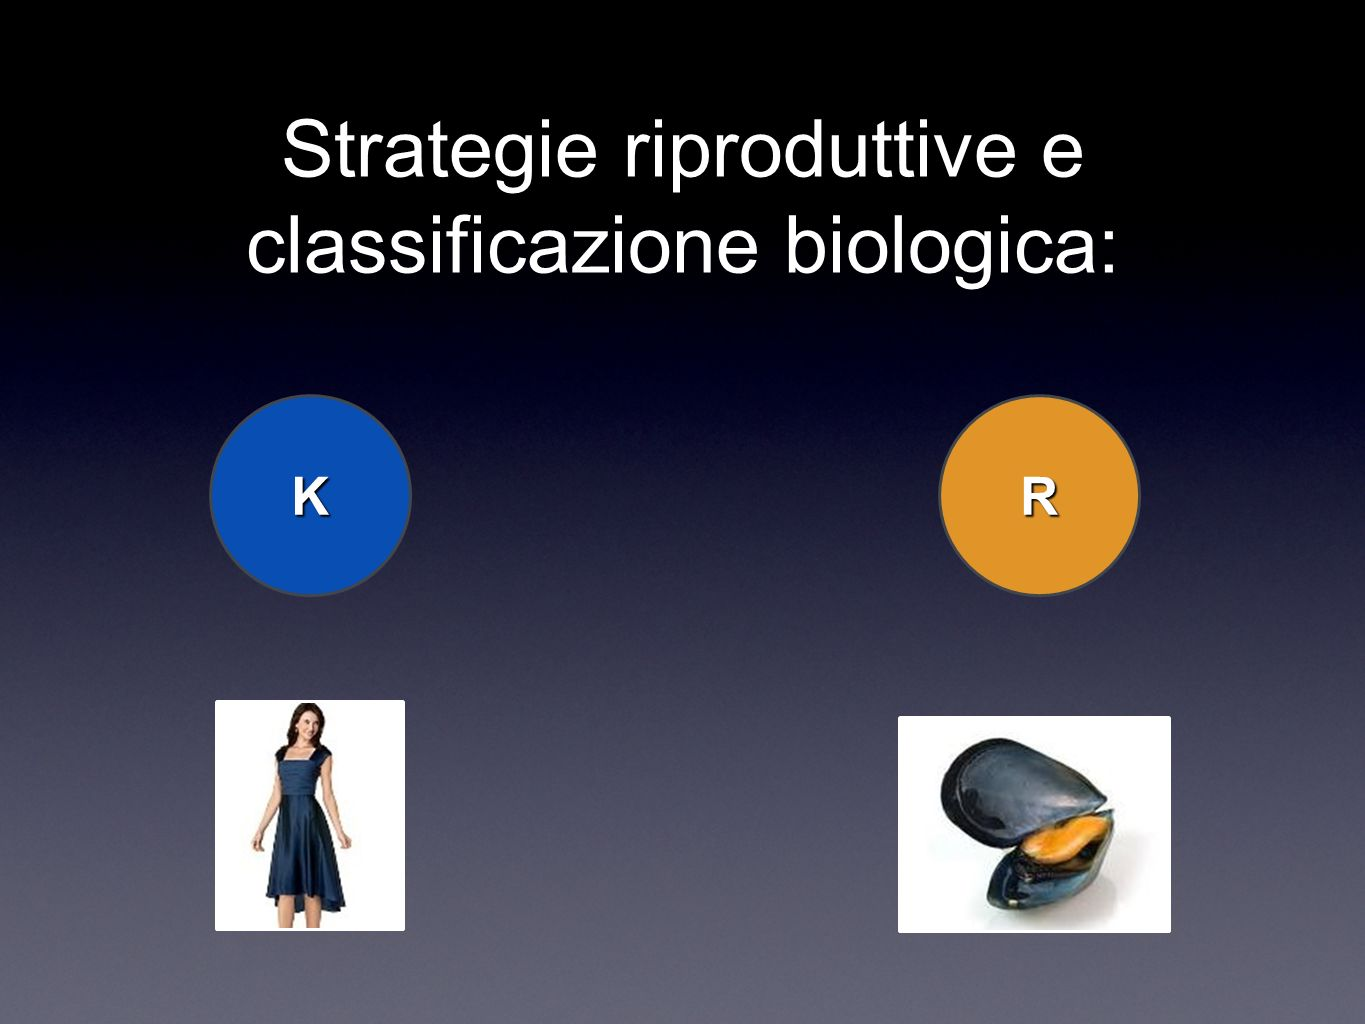 Strategie riproduttive e classificazione biologica: KR